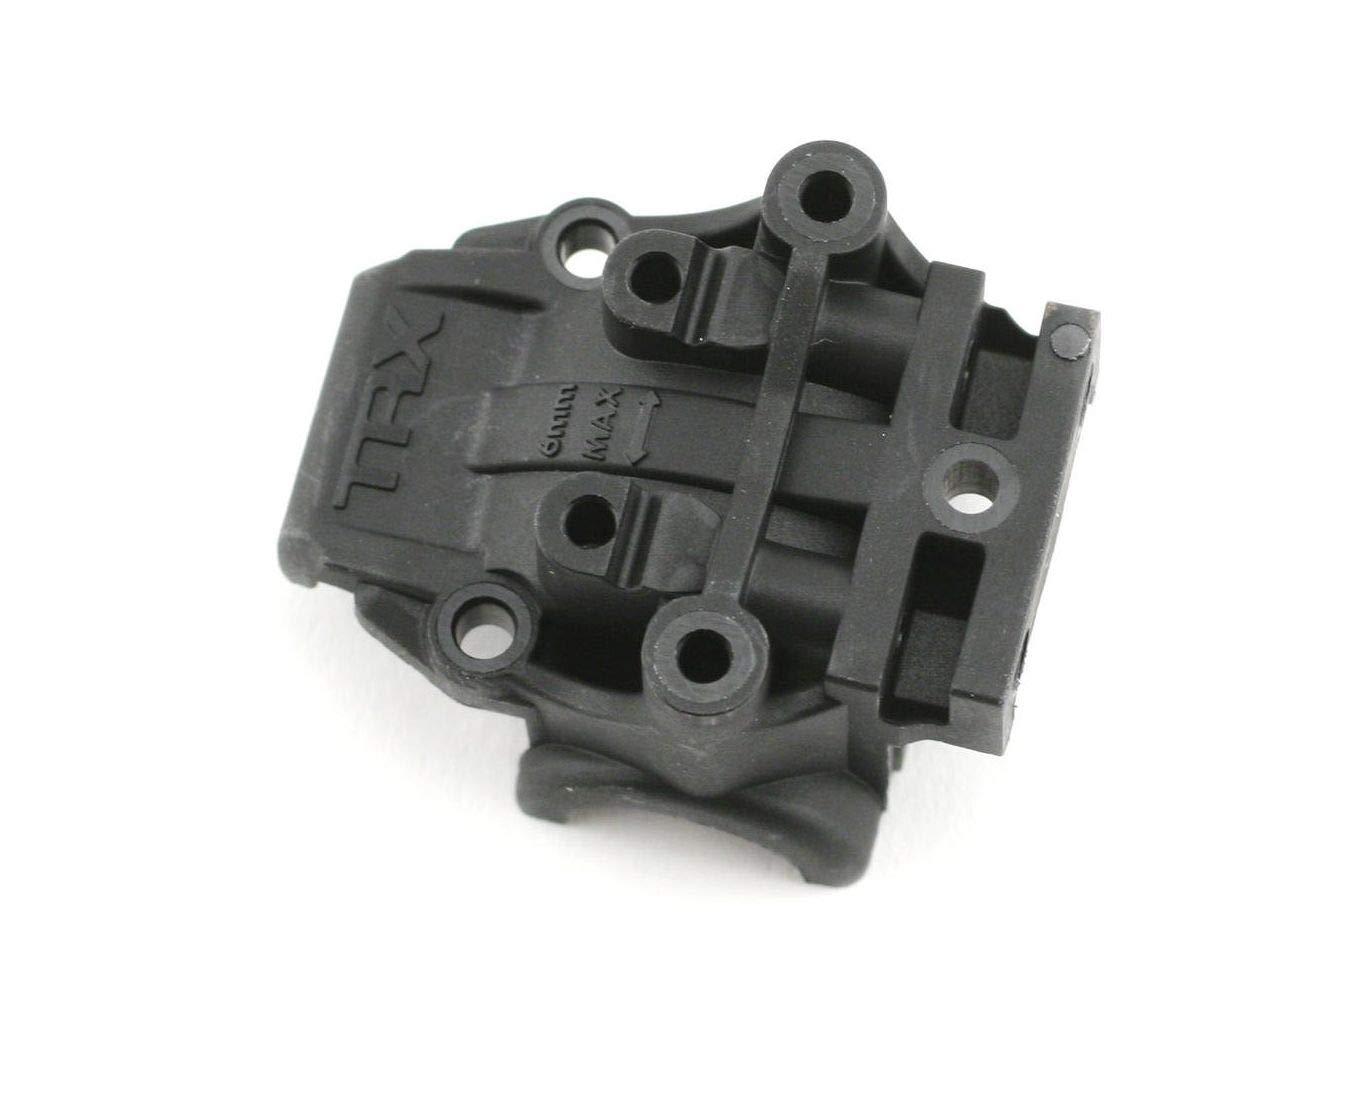 tr5580 TRA5580 TTraxxass Differential Ranking TOP8 Jato Cover Max 70% OFF traxxas5580